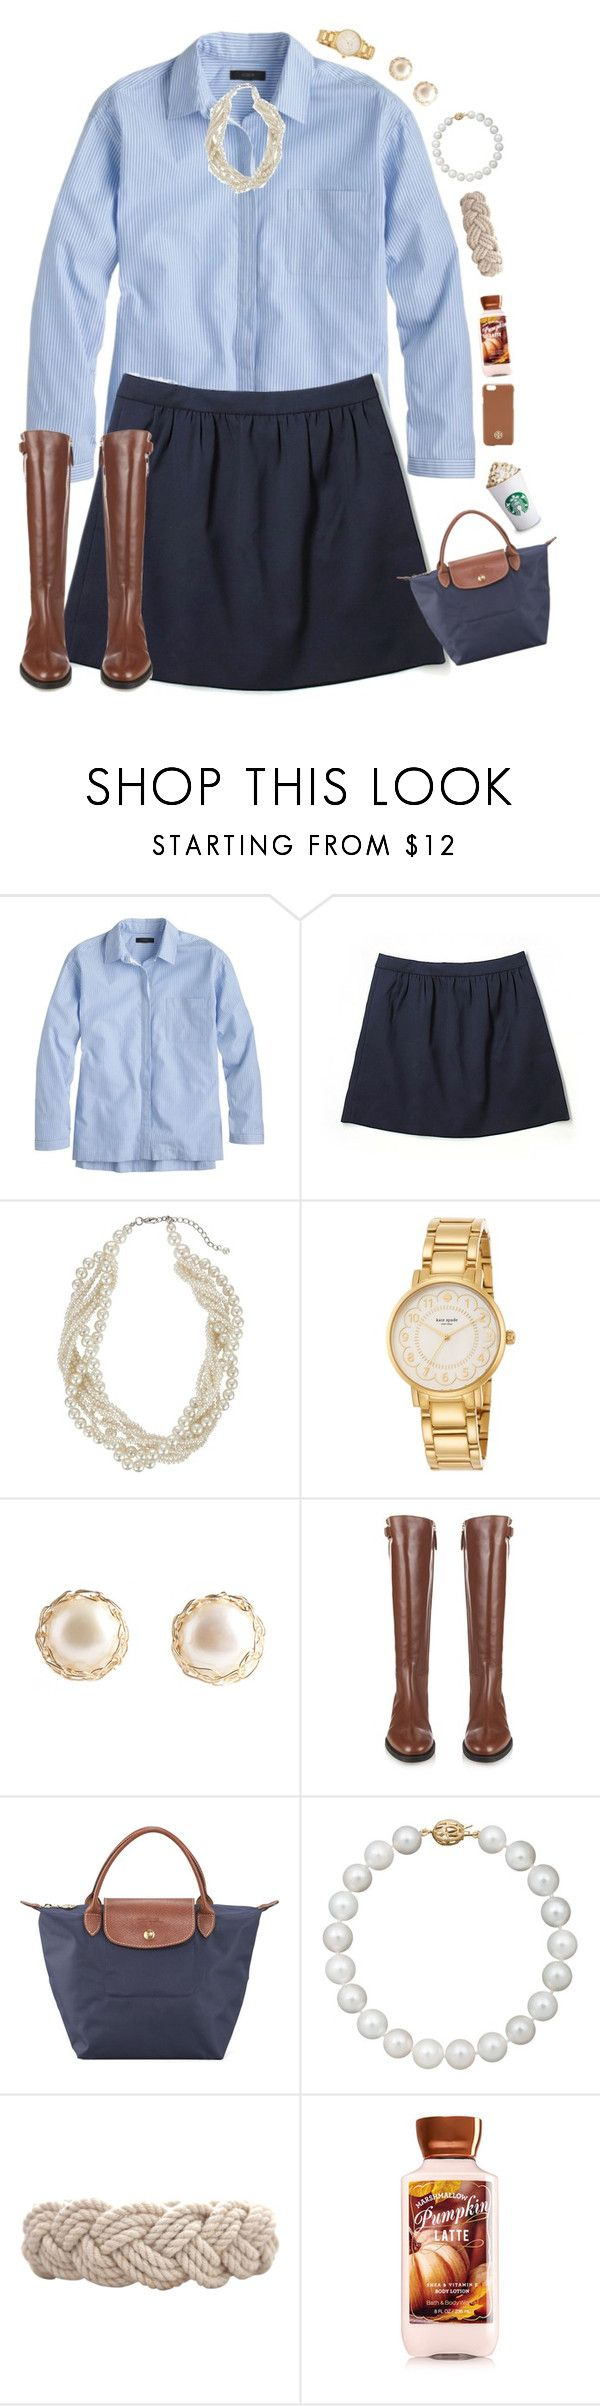 """""""classic"""" by preppy-ginger-girl on Polyvore featuring J.Crew, John Lewis, Kate Spade, Burberry, Longchamp, Belle de Mer, Swell and Tory Burch"""